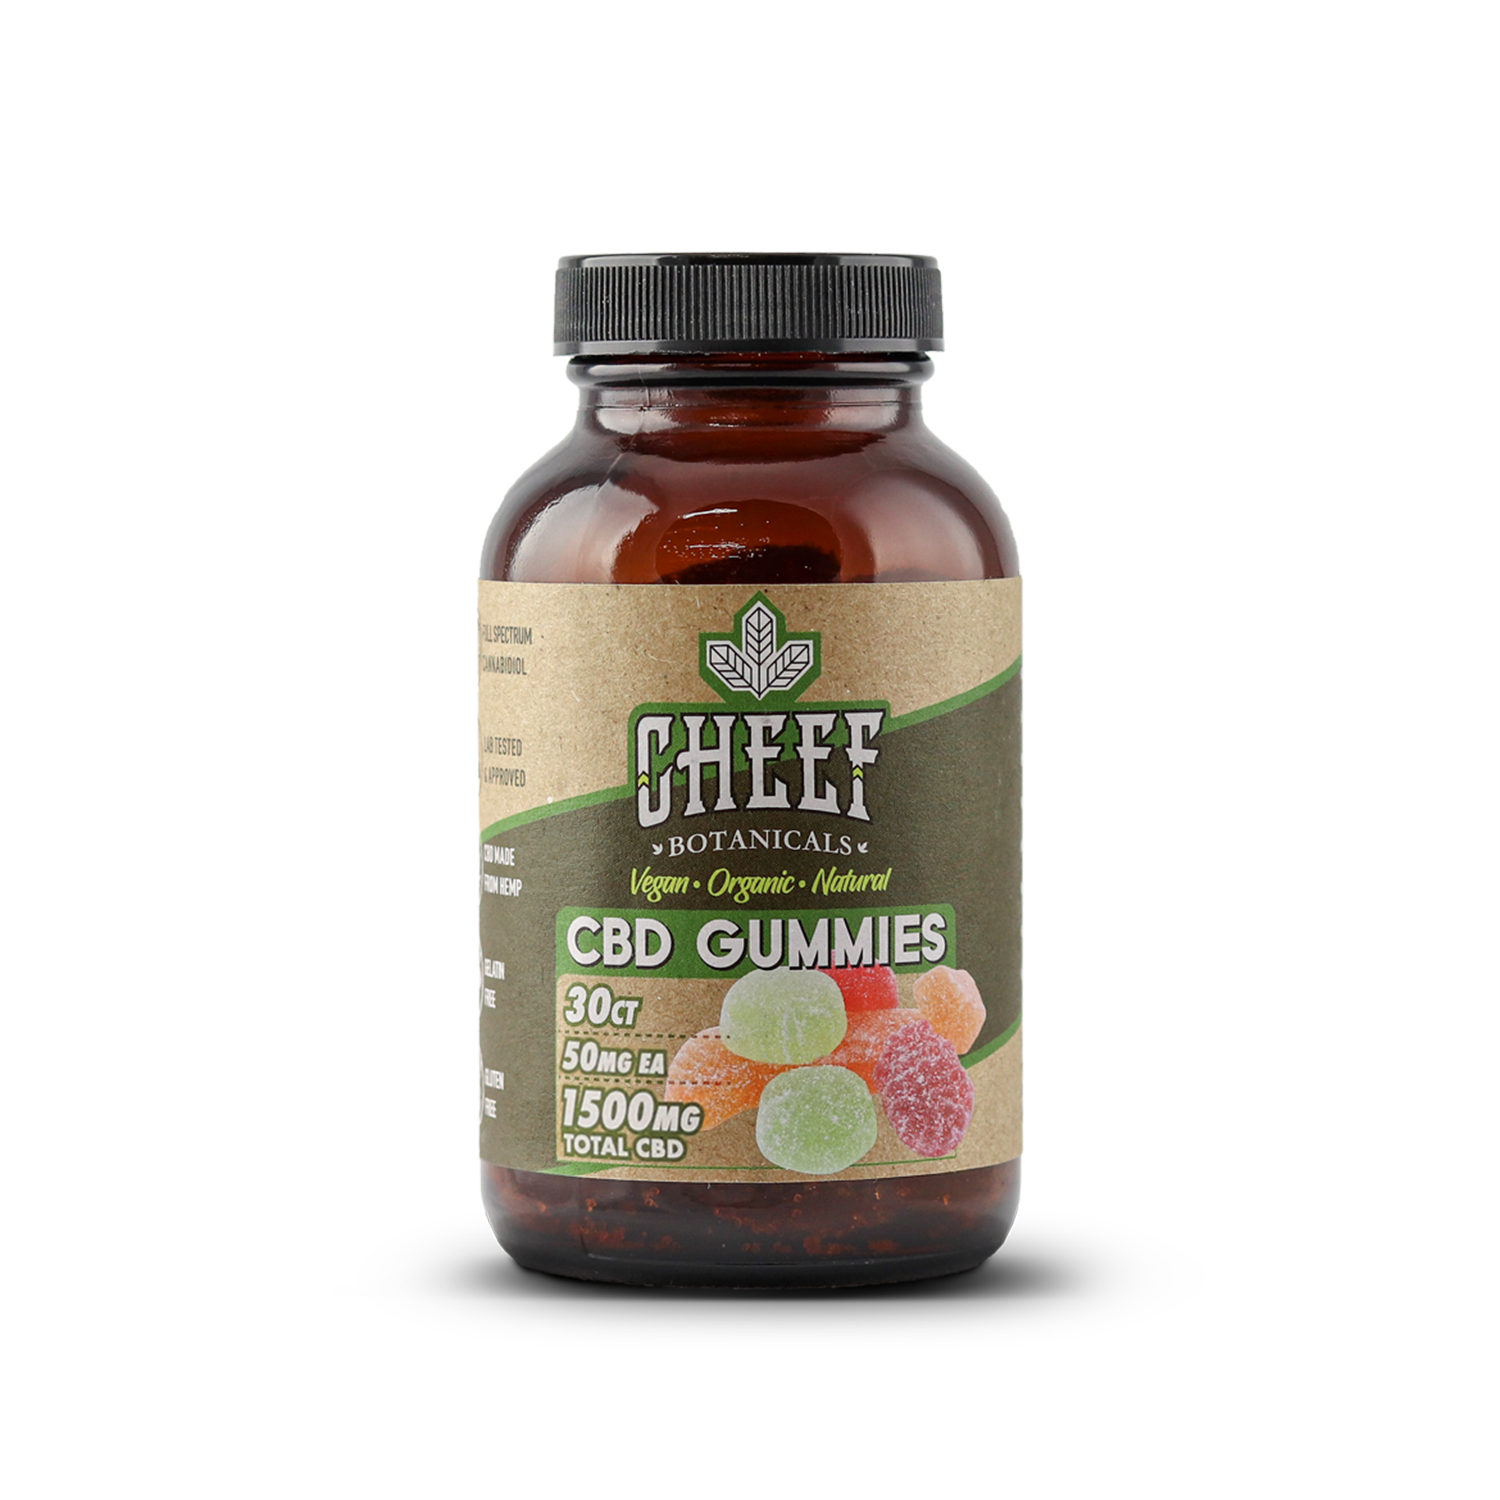 Cheef Botanicals Vegan Gummies | 50mg 30ct - Full Spectrum CBD